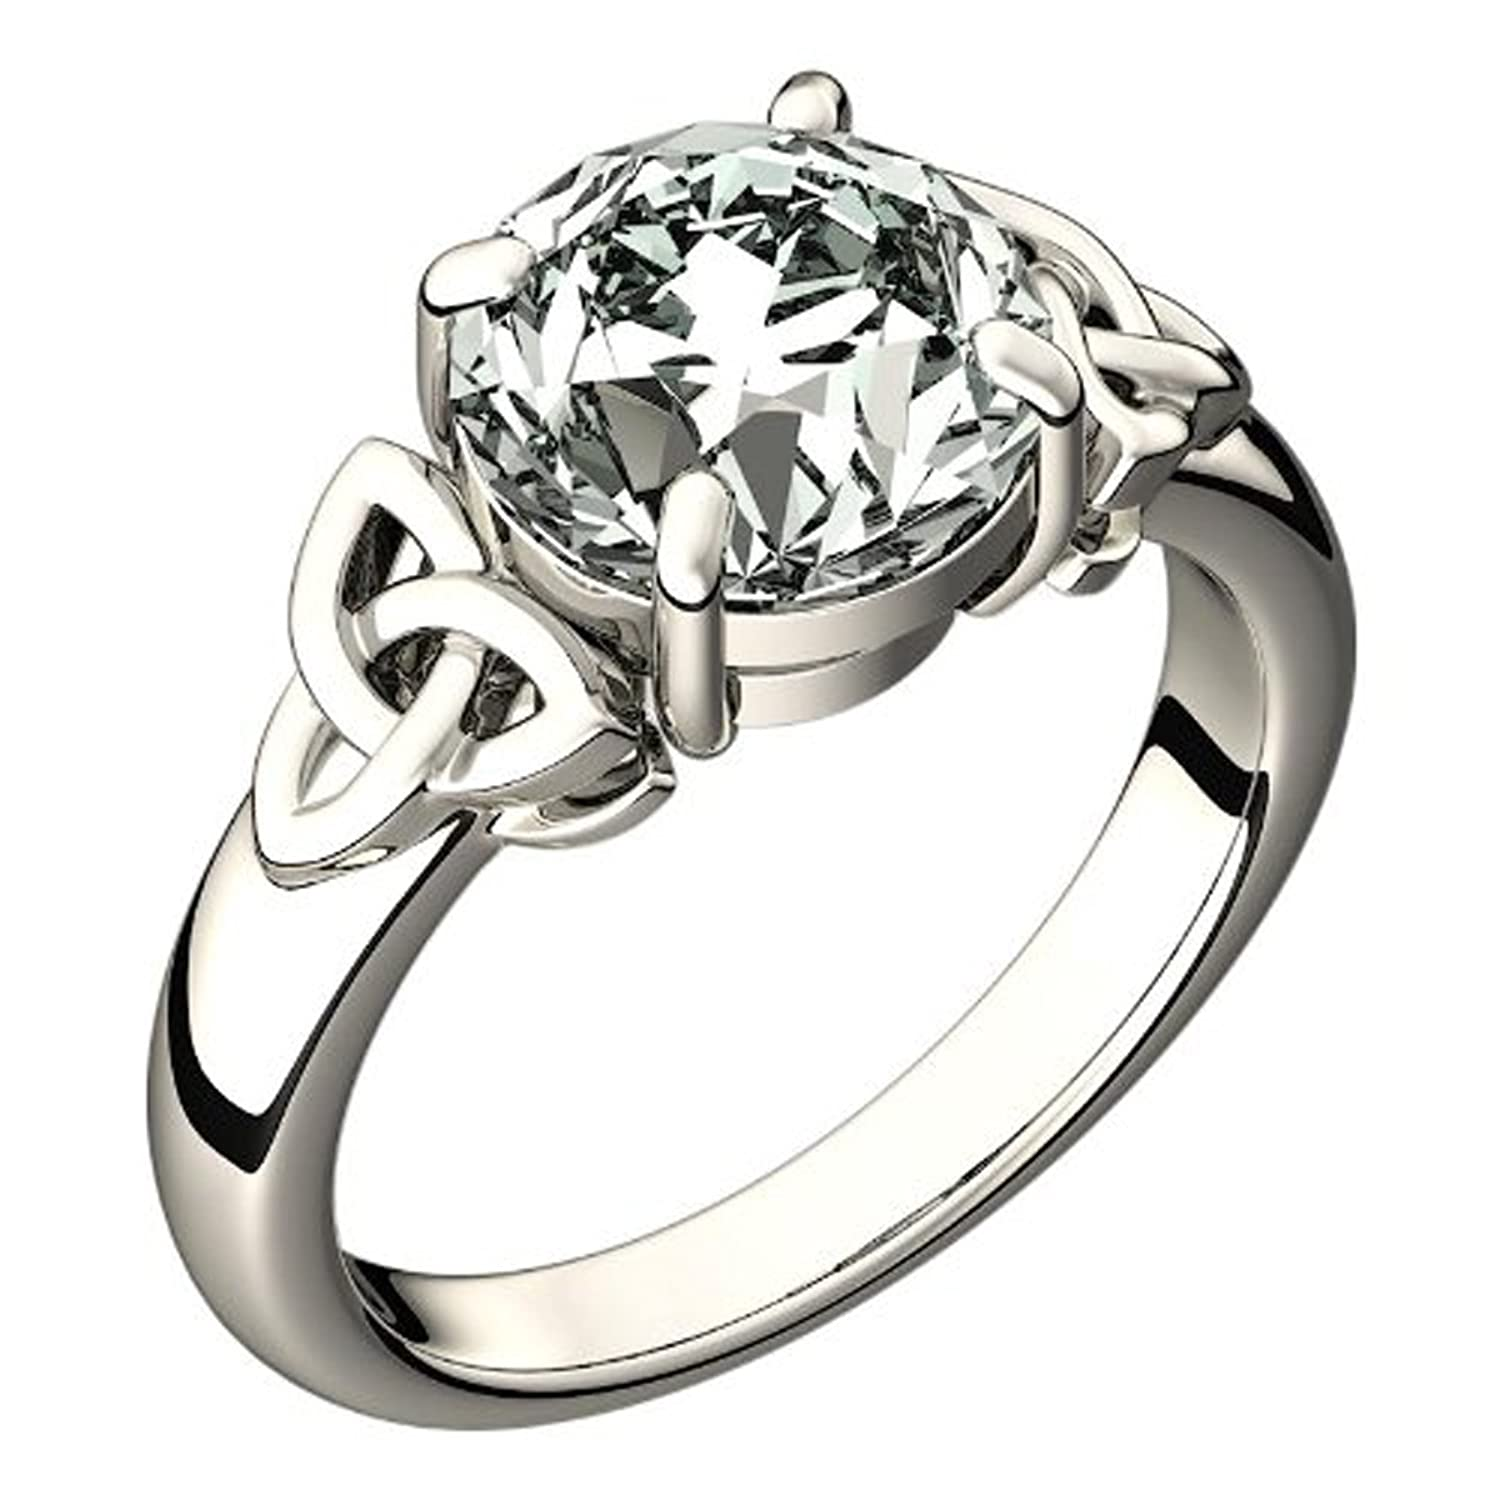 ladies wedding trinity ring rings knot celtic gold band solvar silver and sterling irish mens